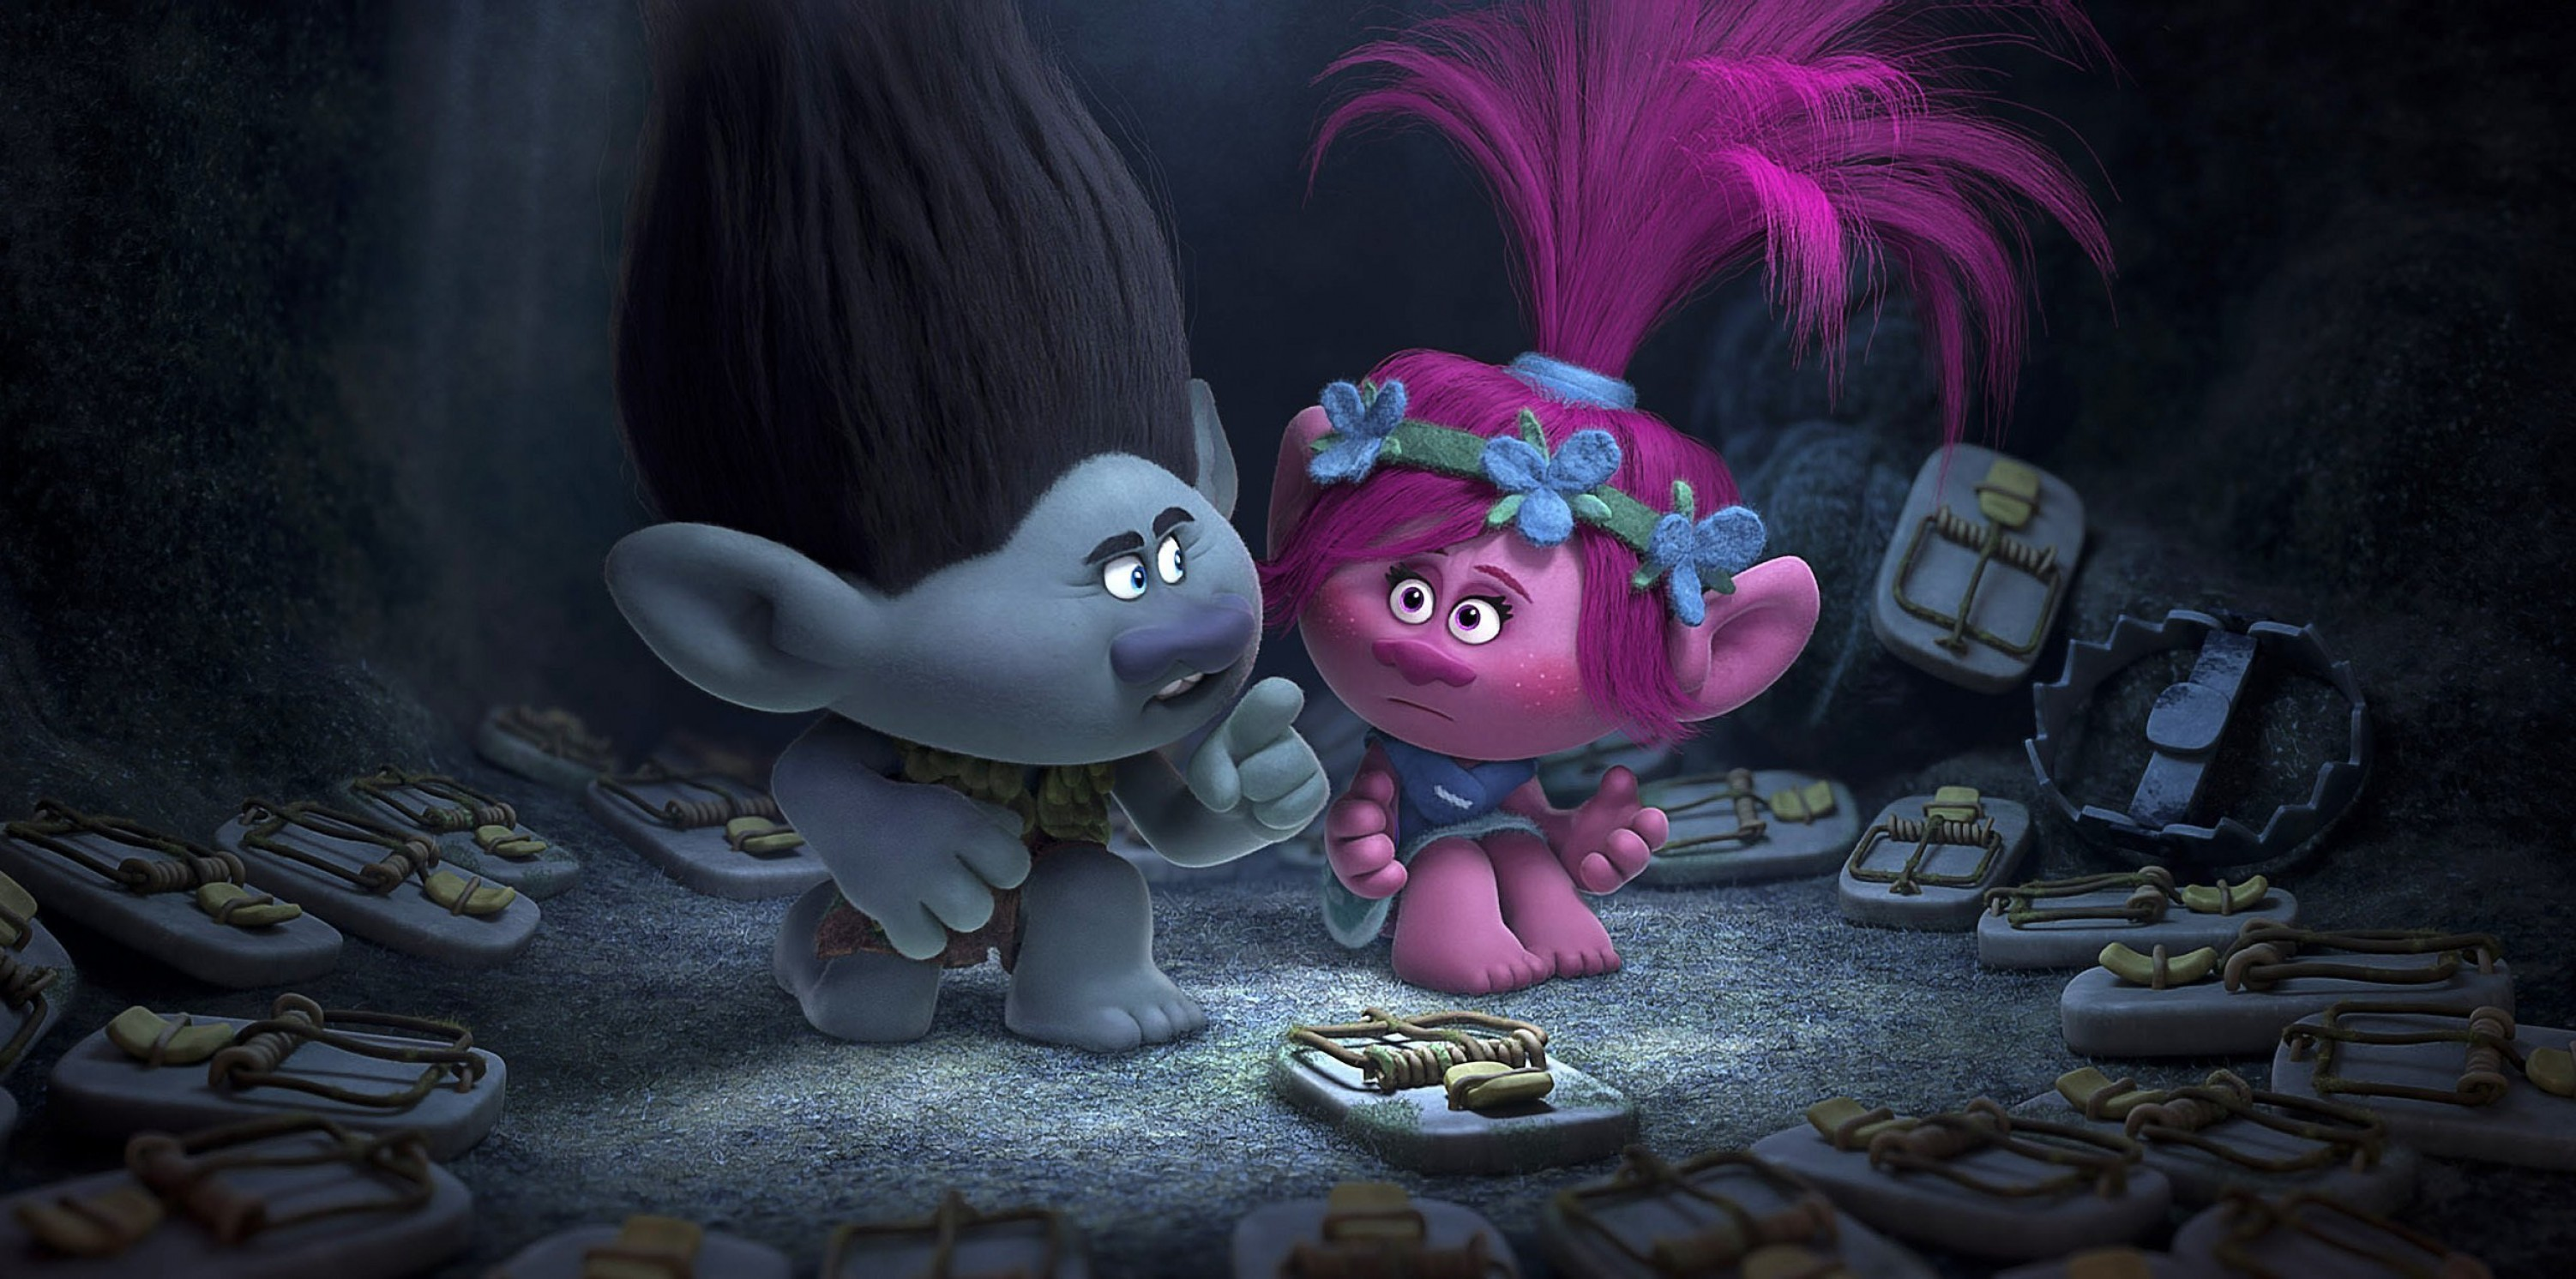 DreamWorks Trolls Vector Clear: Trolls Everywhere Nbcuniversal Aims To Use Parent Comcasts Reach To Spawn A Franchise